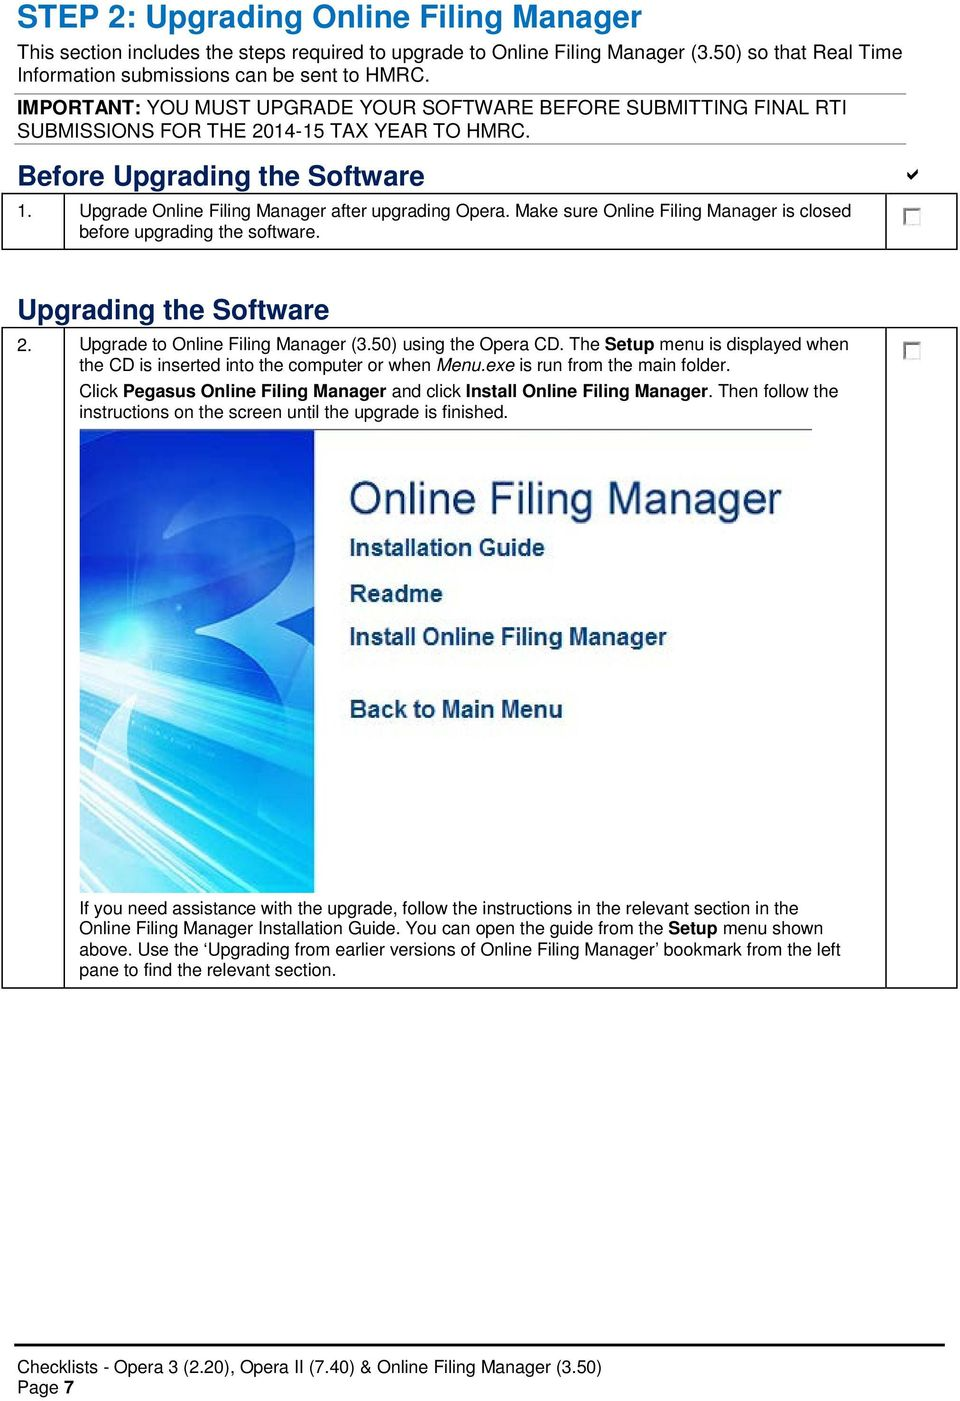 Upgrade Online Filing Manager after upgrading Opera. Make sure Online Filing Manager is closed before upgrading the software. Upgrading the Software 2. Upgrade to Online Filing Manager (3.